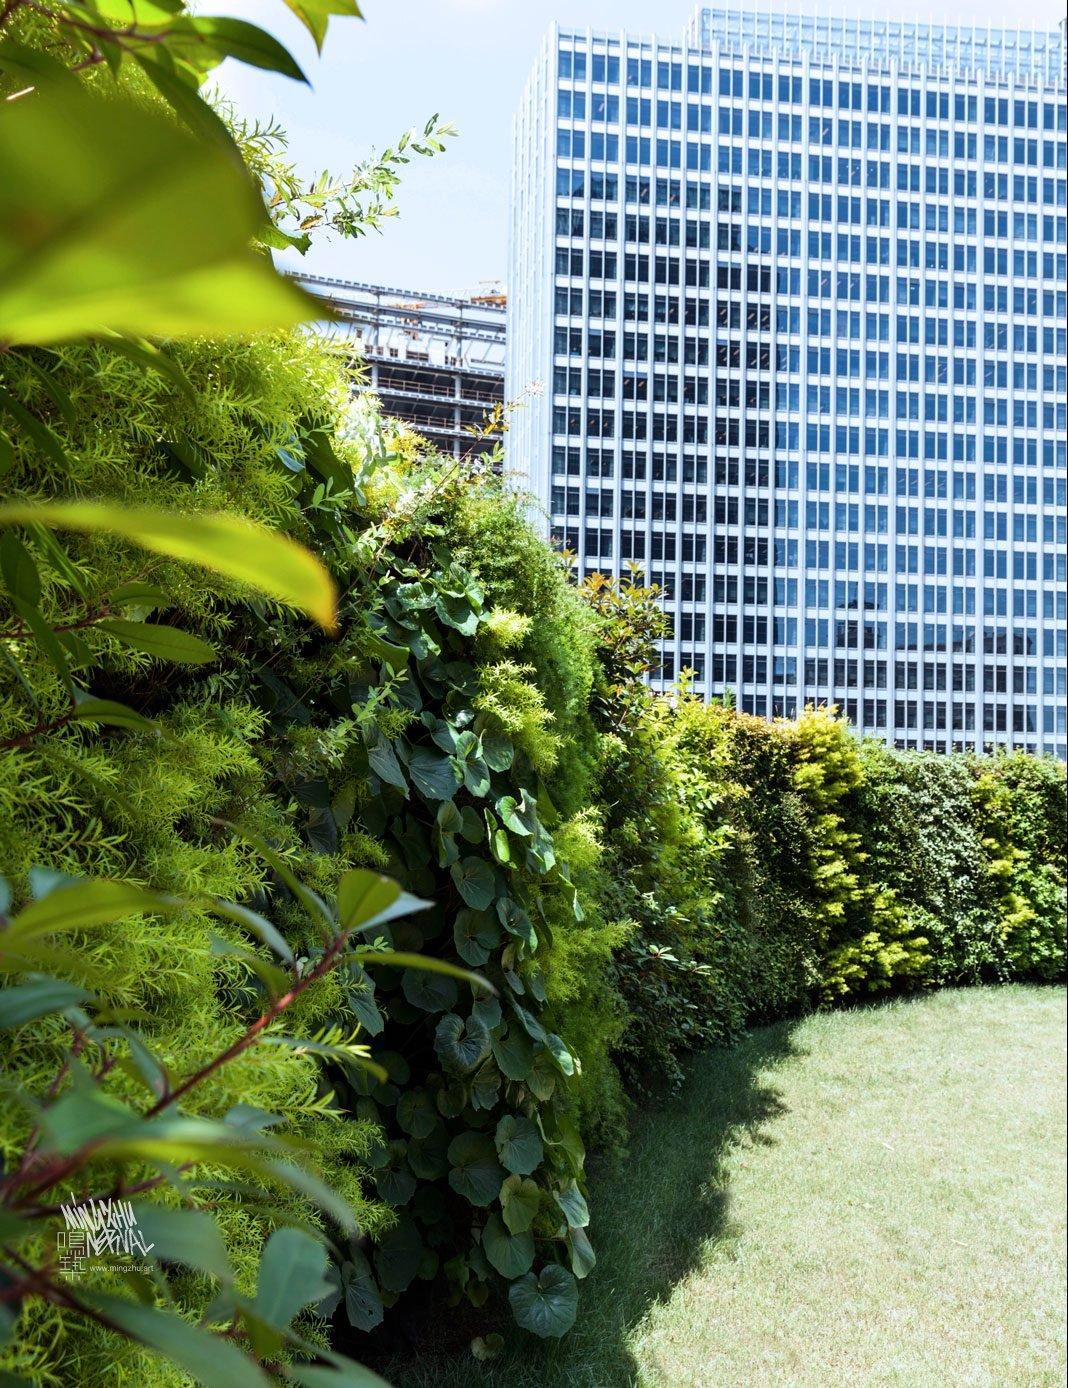 At Mingzhu Nerval, we thrive at creating the most beautiful vertical gardens in the world. For Ogilvy, we created a garden rooftop - Shanghai, 2016.